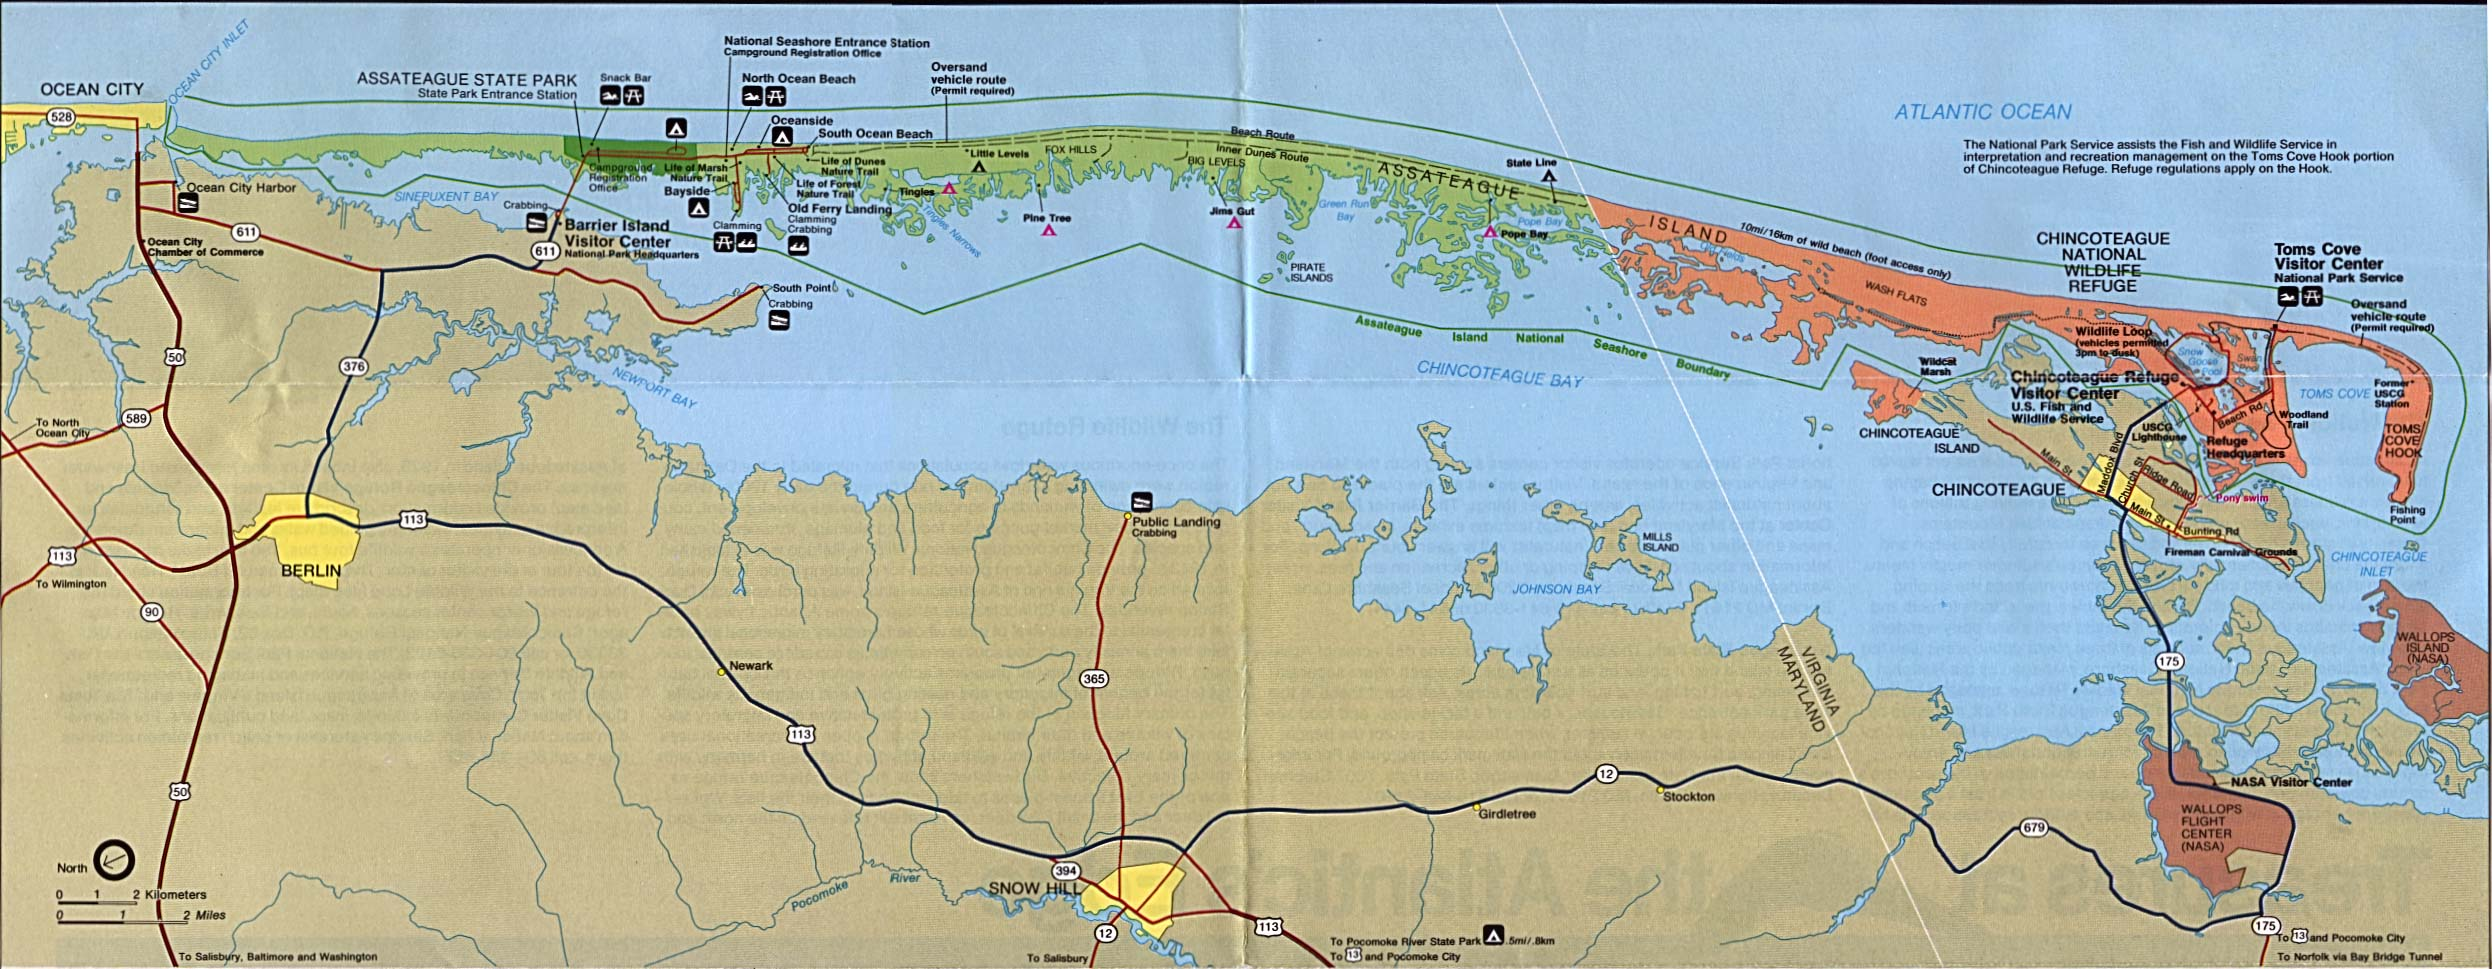 Maps of United States National Parks, Monuments and Historic Sites Assateague Island National Seashore [Maryland] (Park Map) 1995 (384K)